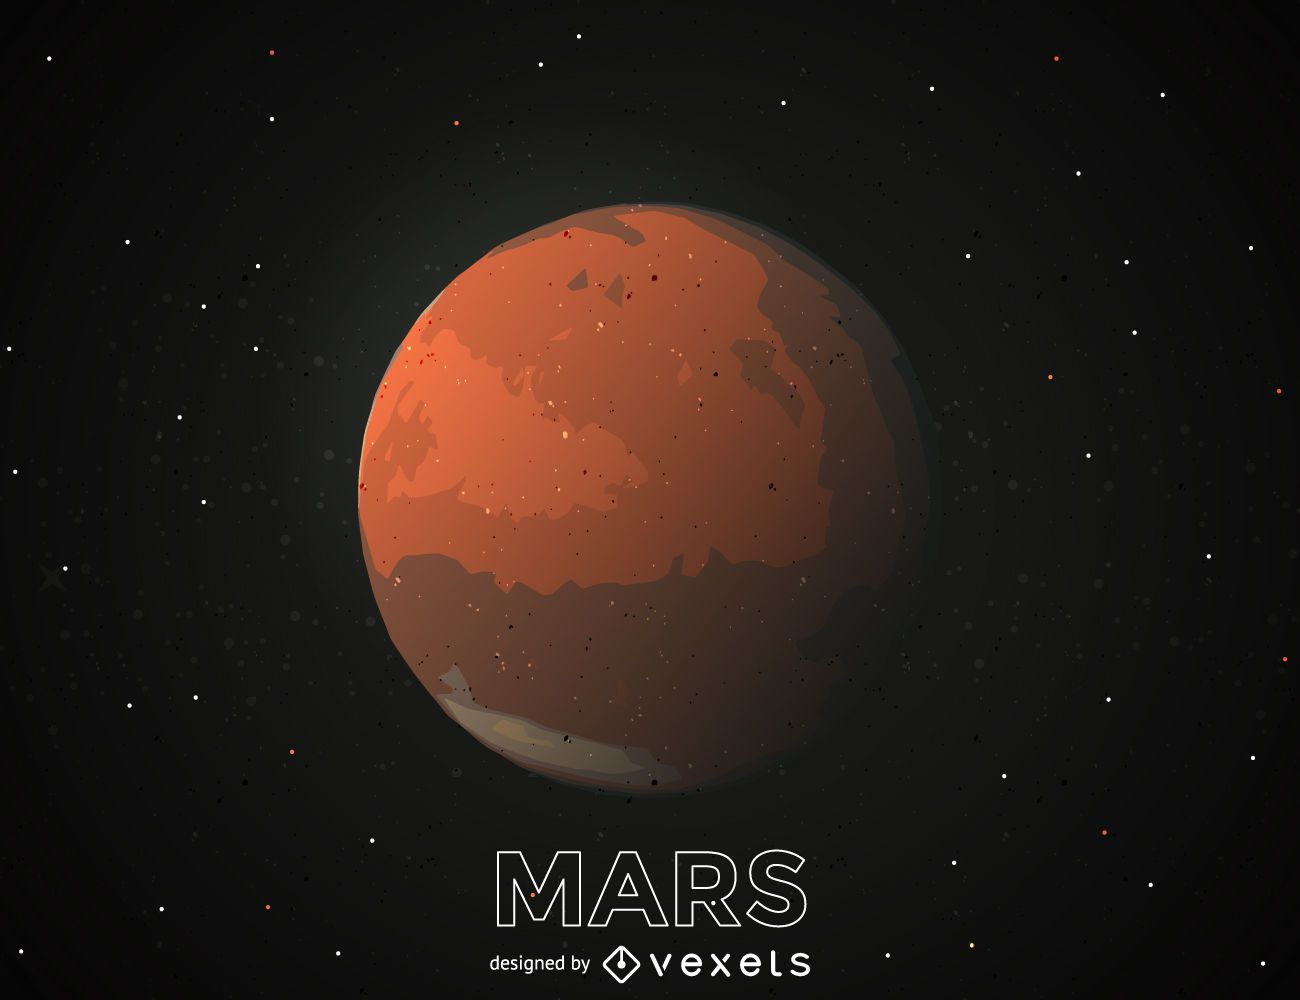 Mars is the fourth planet from the Sun - Sakibs Gaming Blog